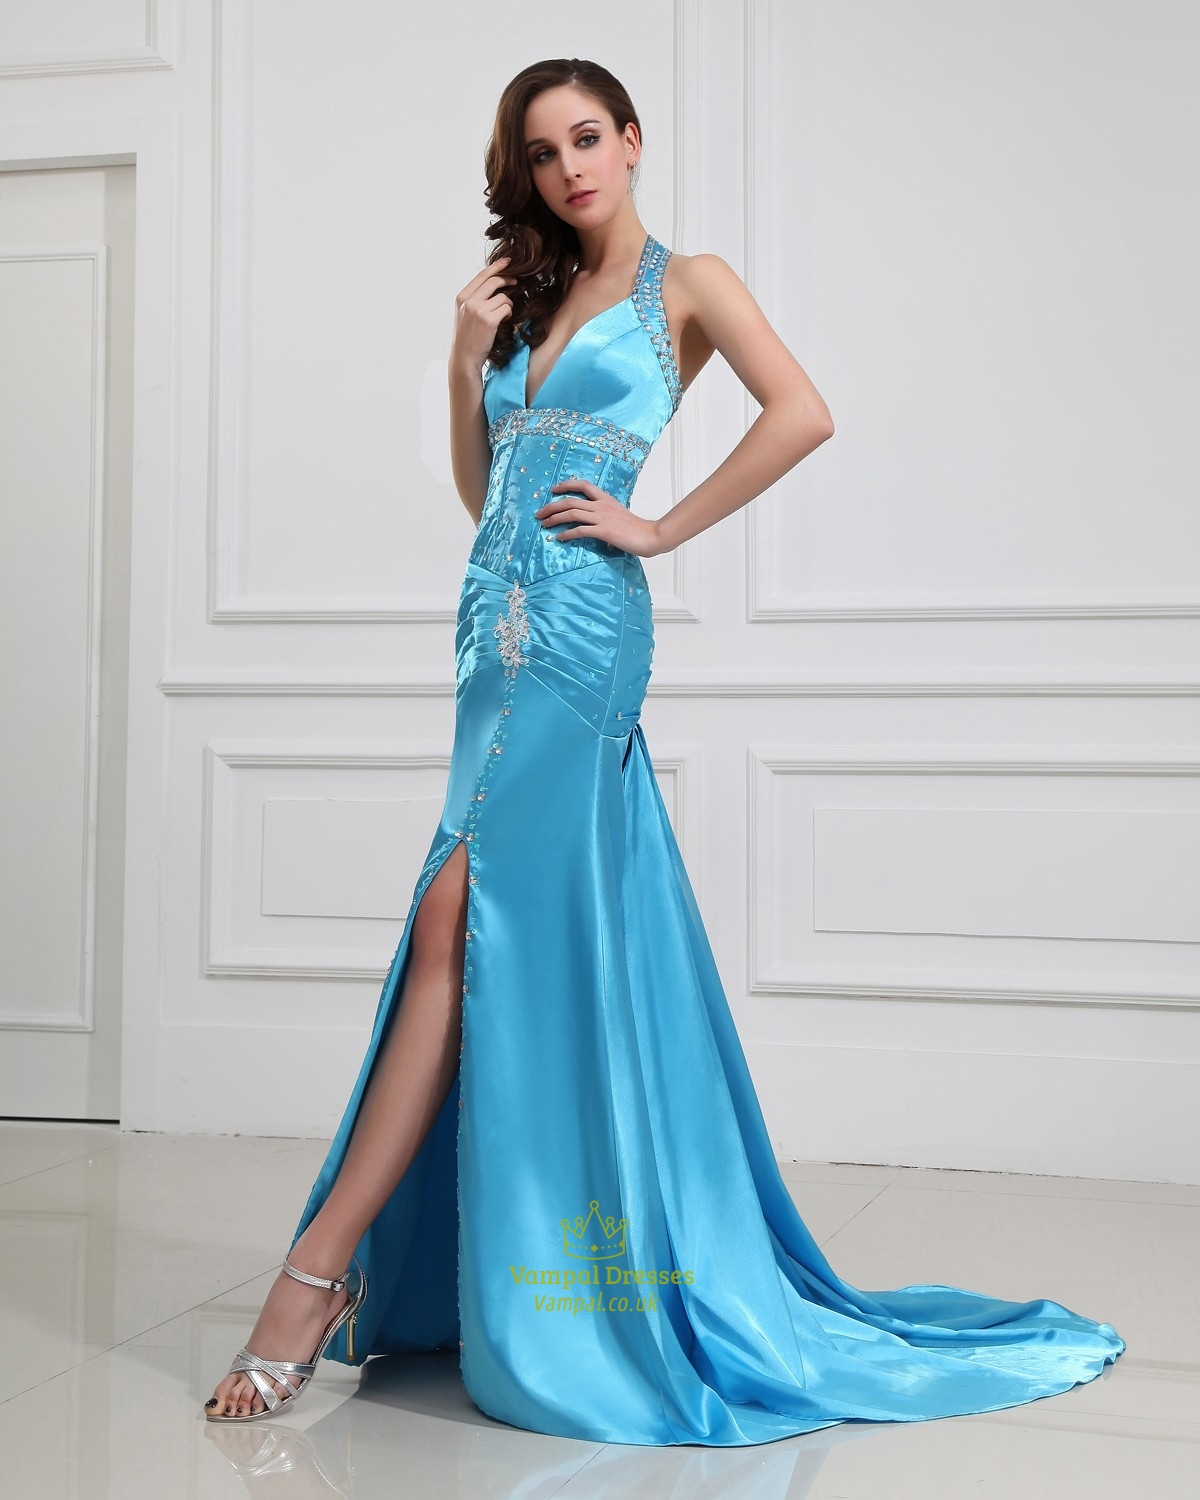 Prom Dresses With Slits Up The Side Uk 96